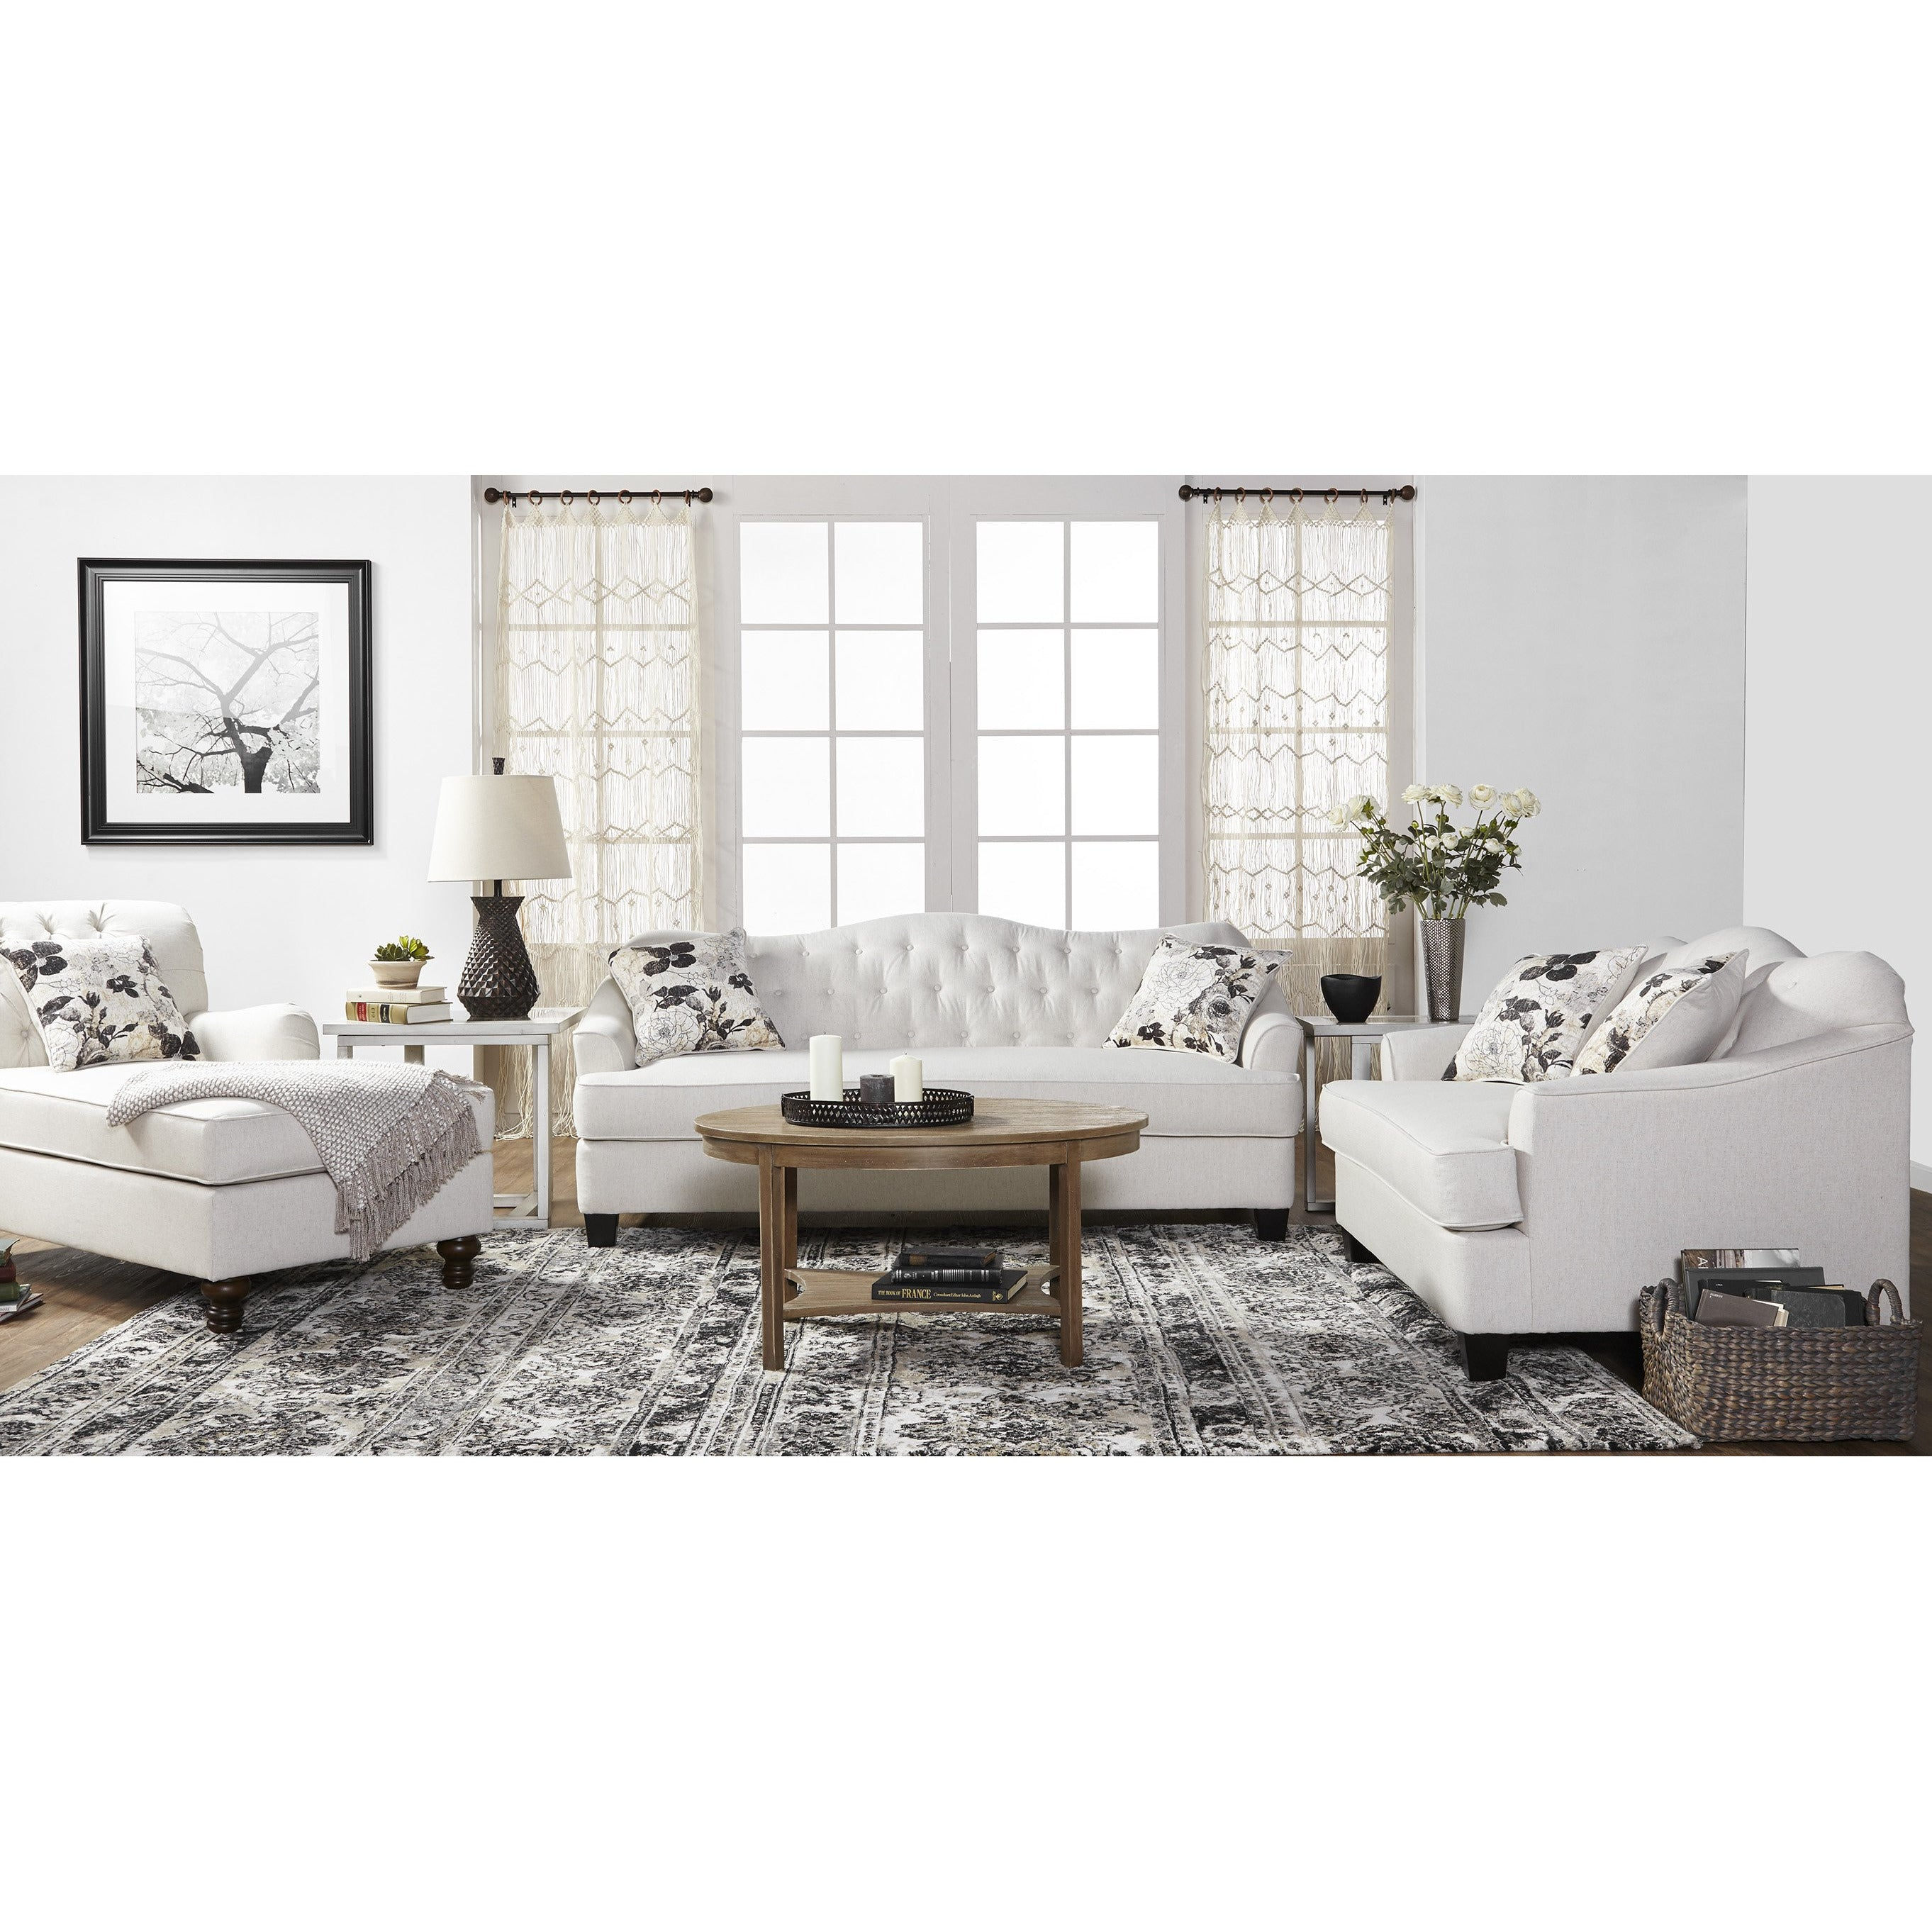 Living Set - Living Style Collection